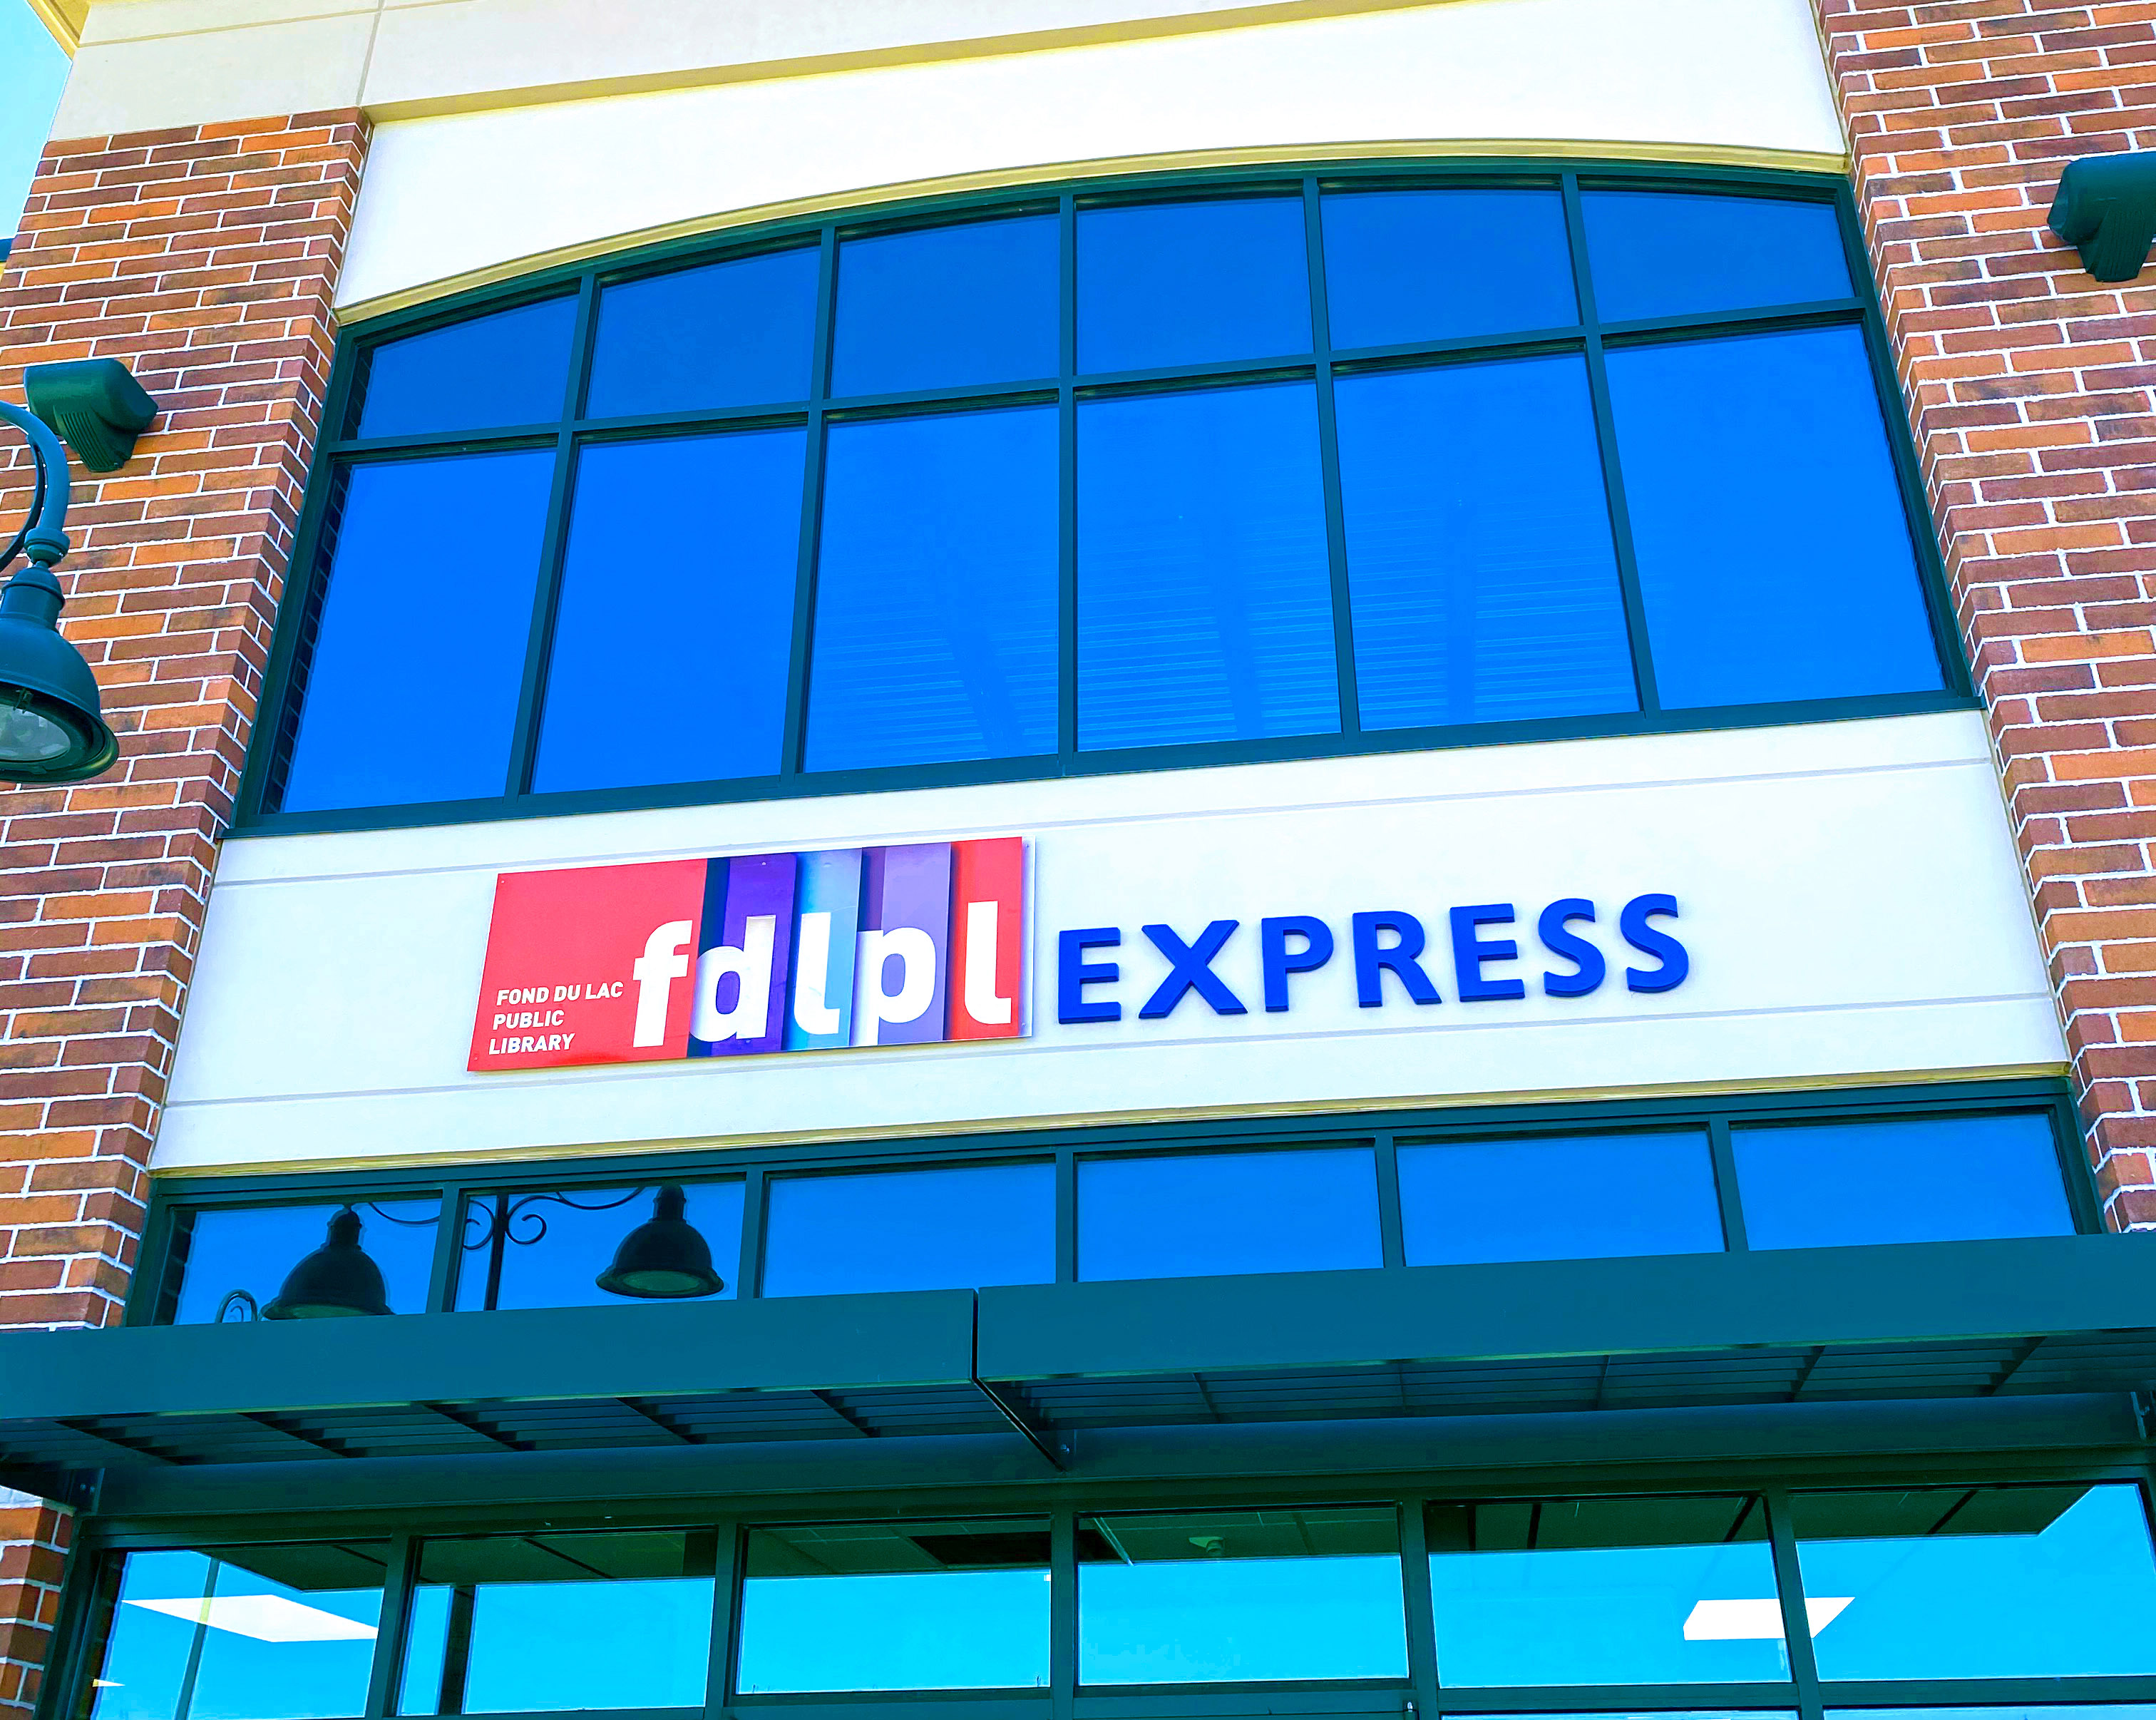 FDLPL Express will reopen September 8